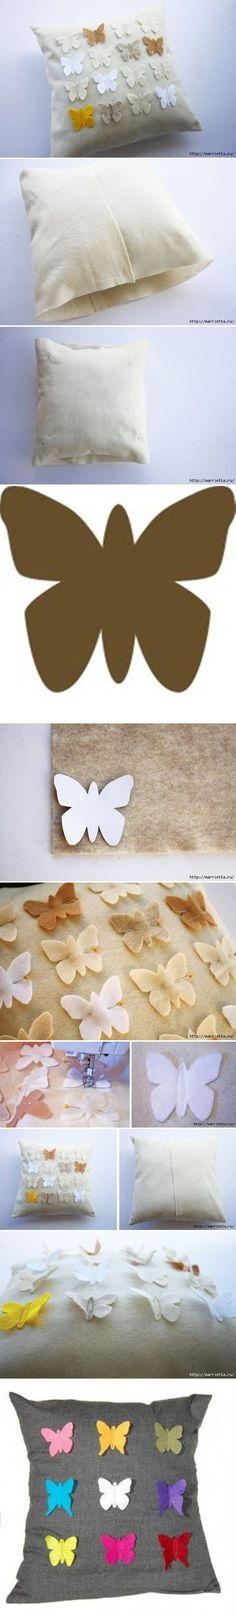 How To Make Butterfly down Pillow Cover step by step DIY tutorial instructions / How To Instructions